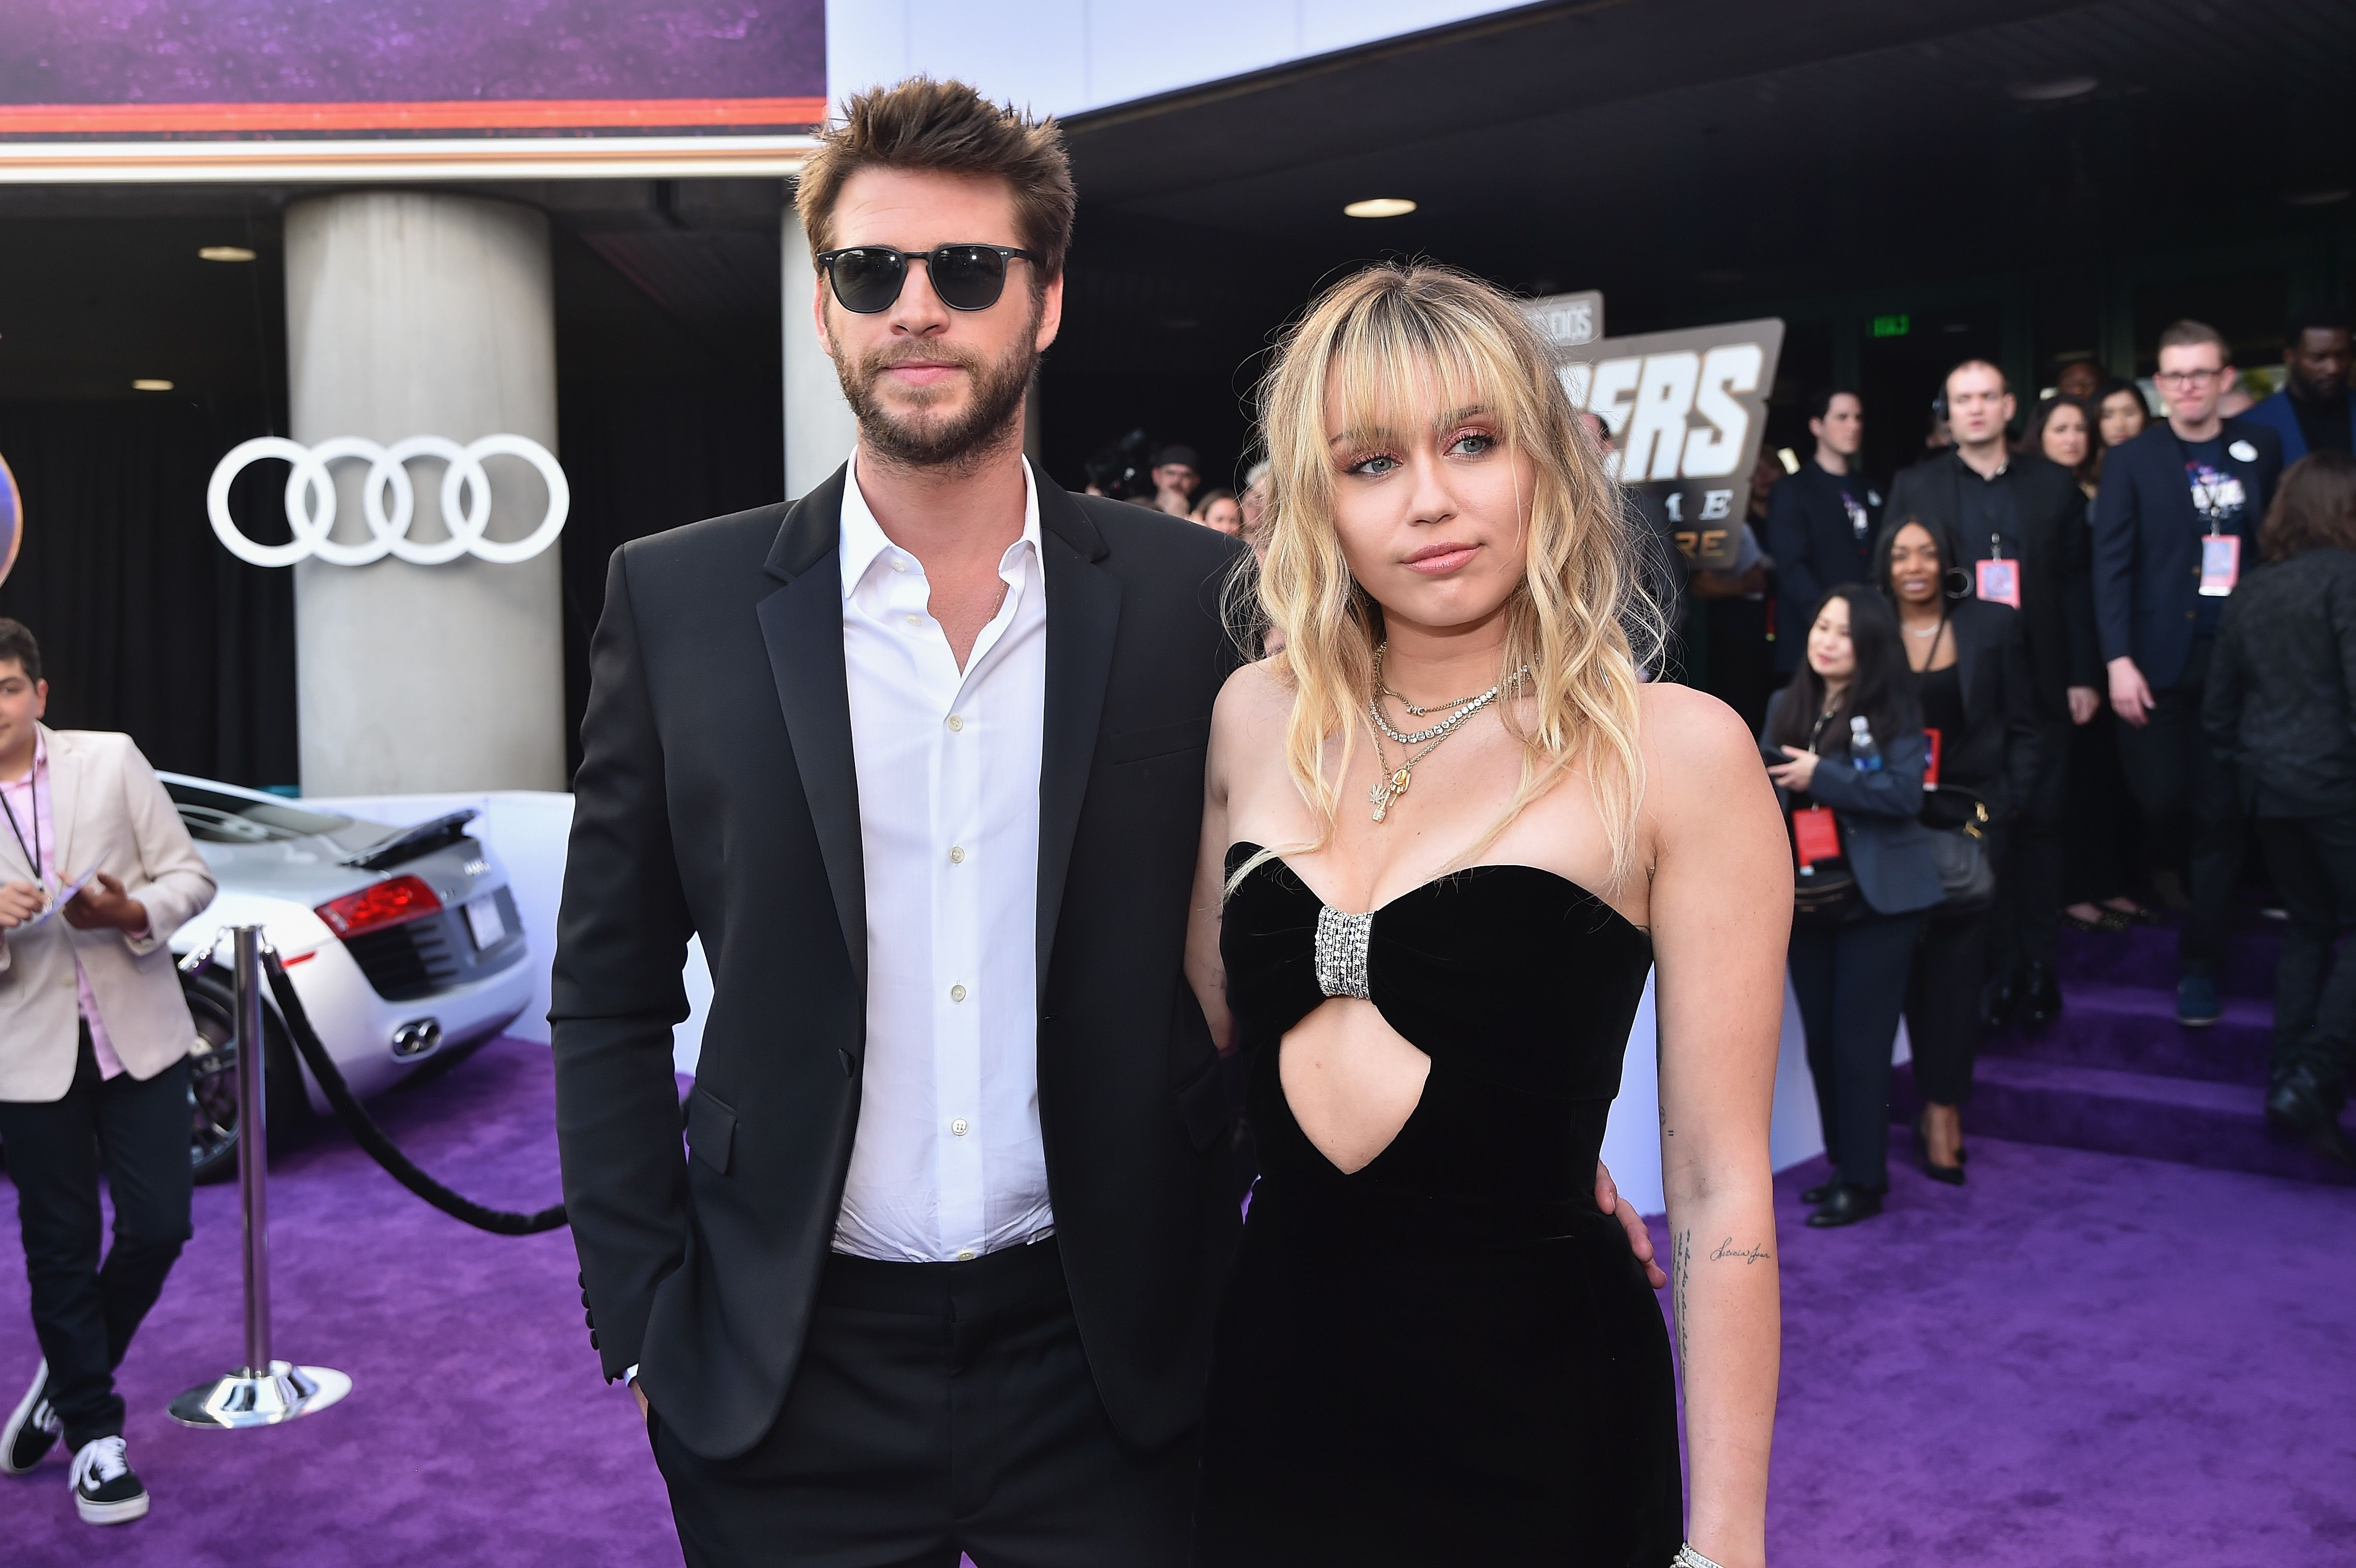 Miley Cyrus Cuts A Slick Figure In Saint Laurent With Husband Chris Hemsworth At Avengers: Endgame Premiere